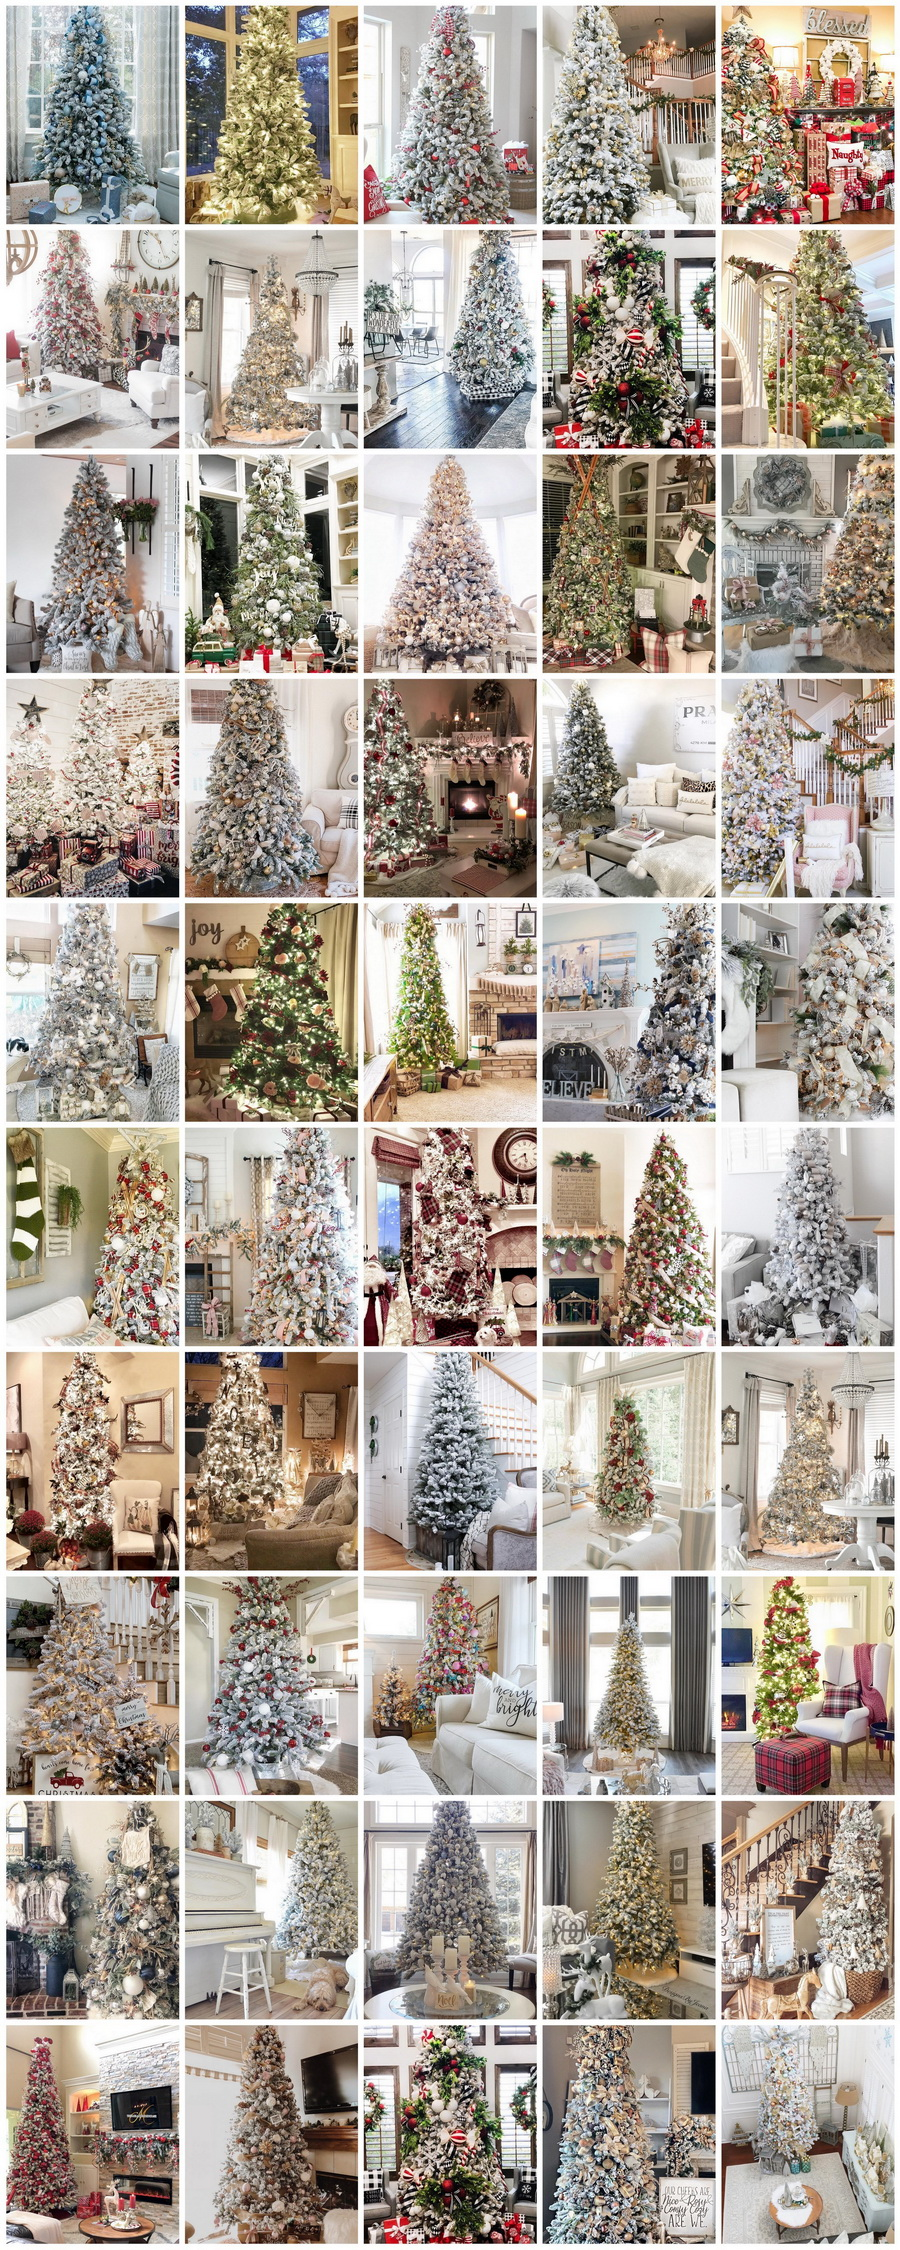 50 Dazzling And Highly Realistic Christmas Trees Purchased @KingOfChristmas + Decorated By Your Favorite Home Decor Bloggers